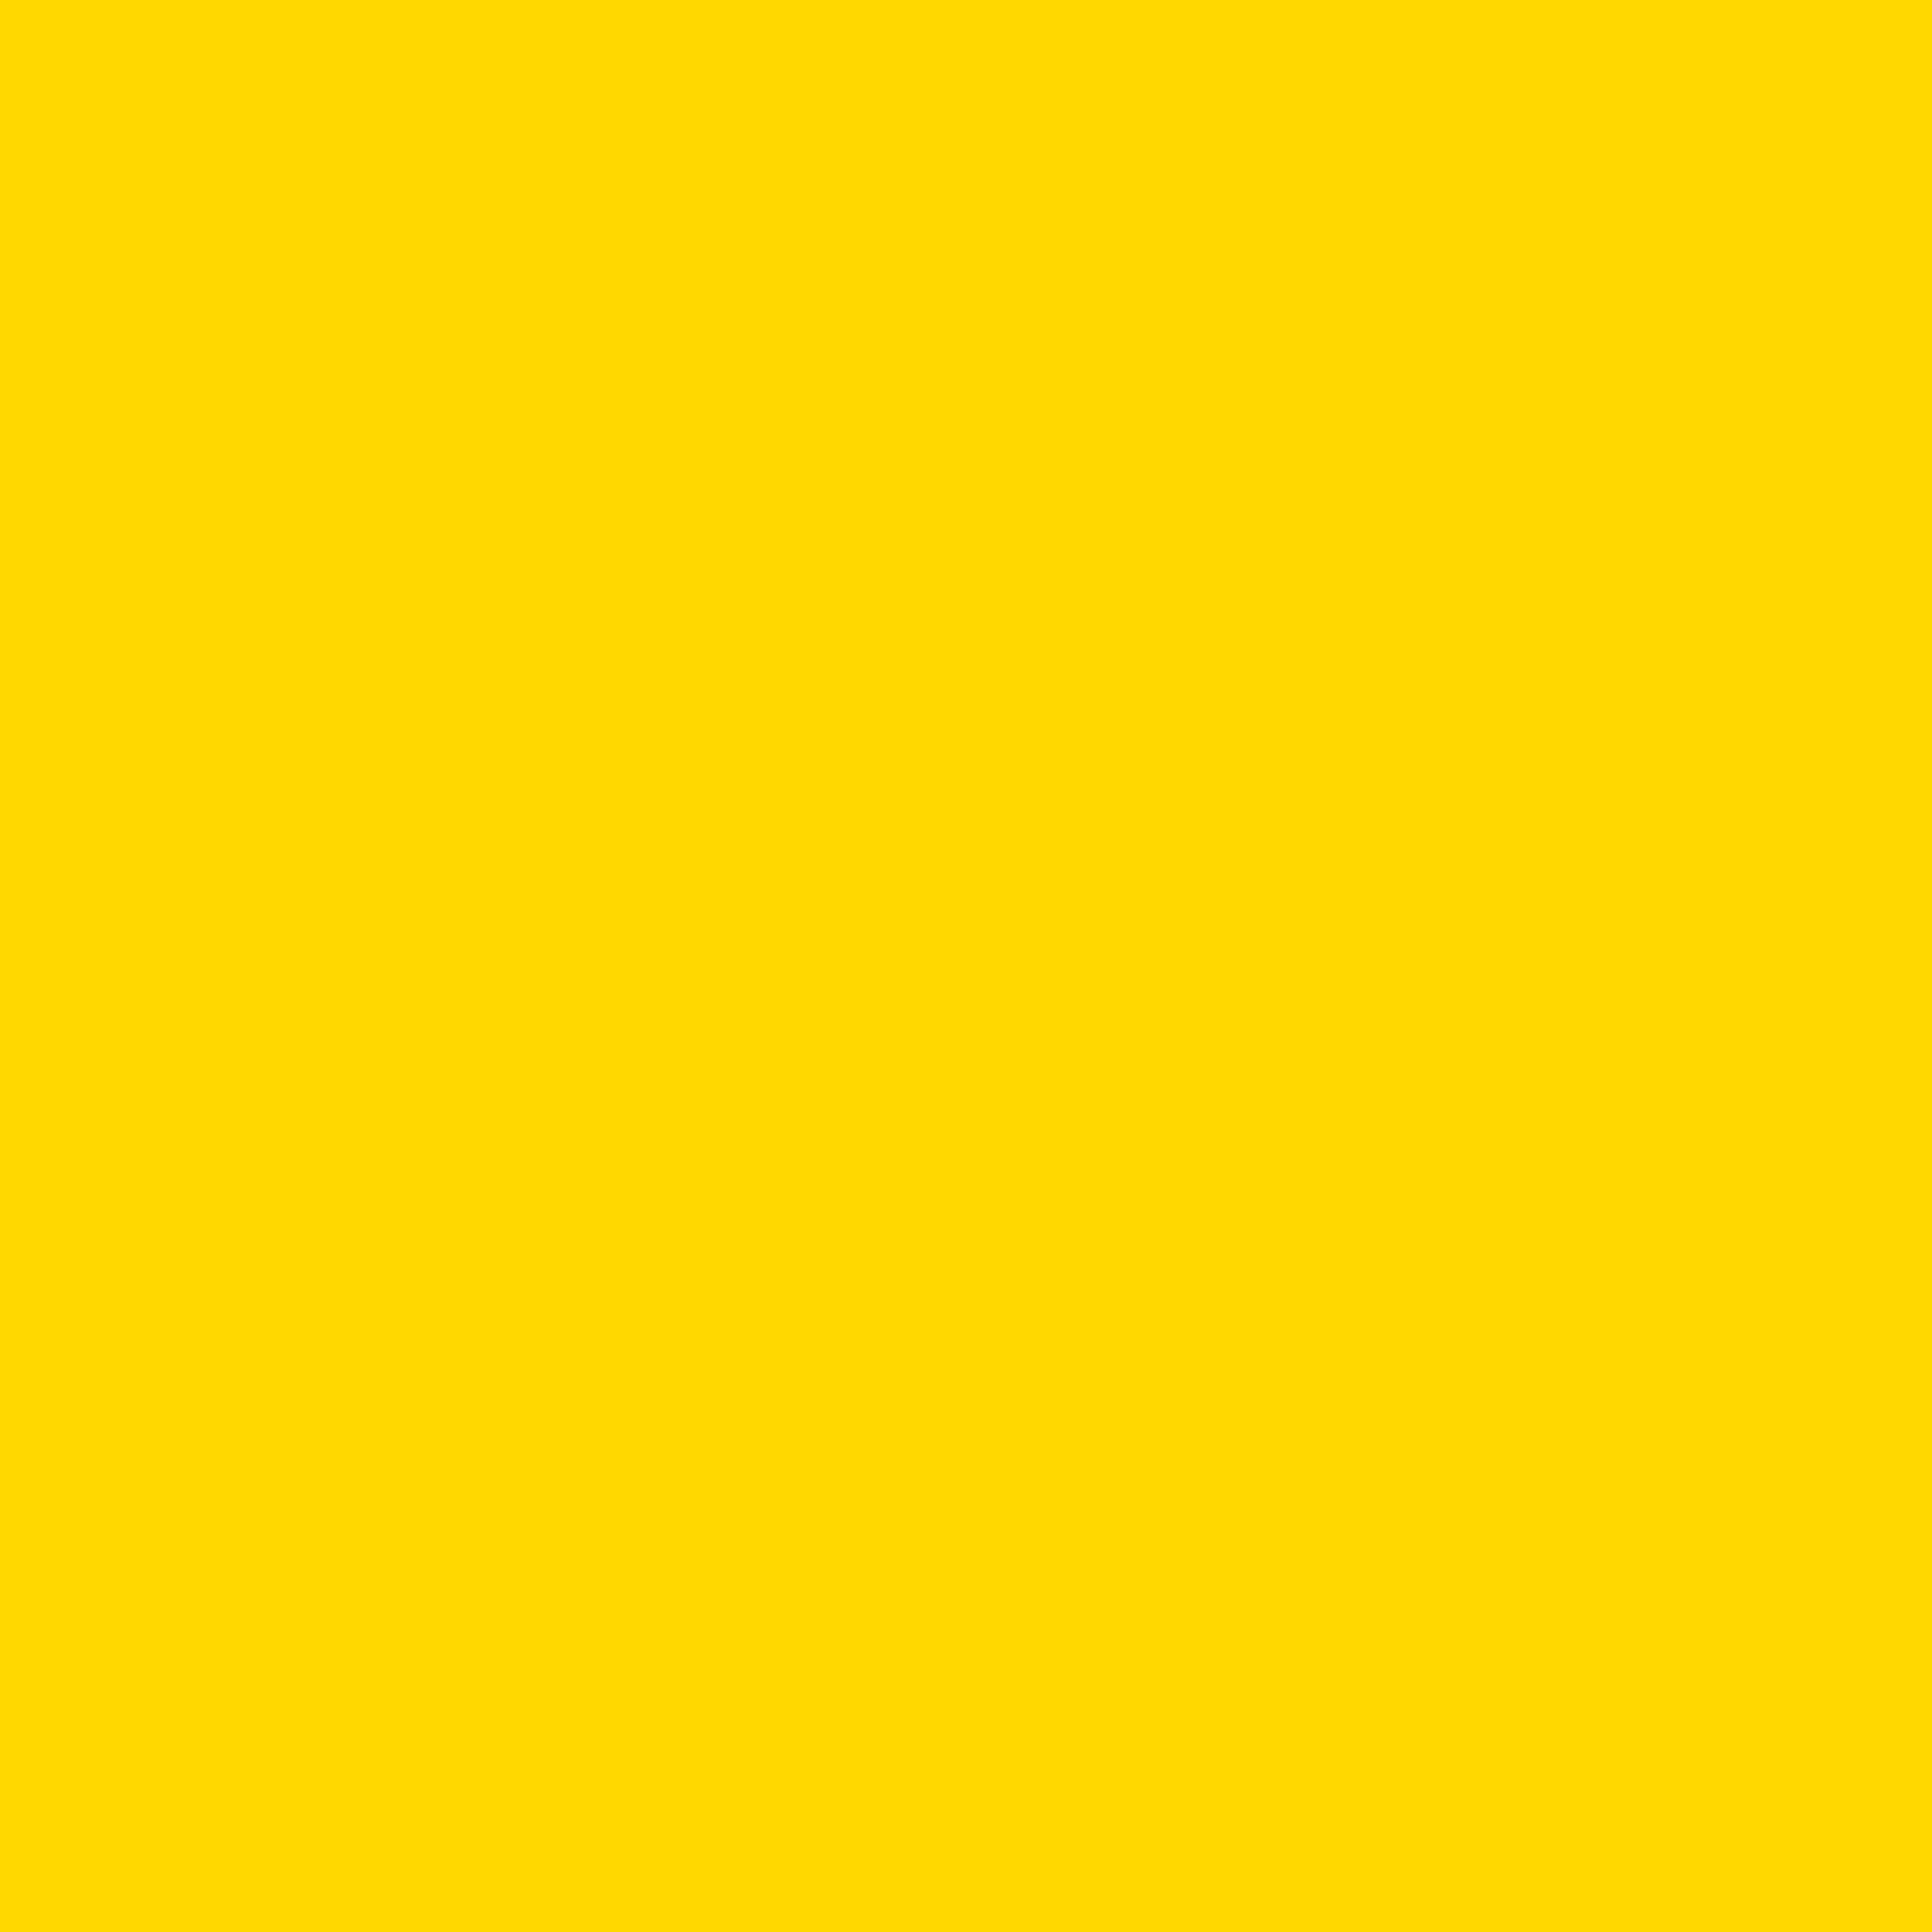 2048x2048 School Bus Yellow Solid Color Background